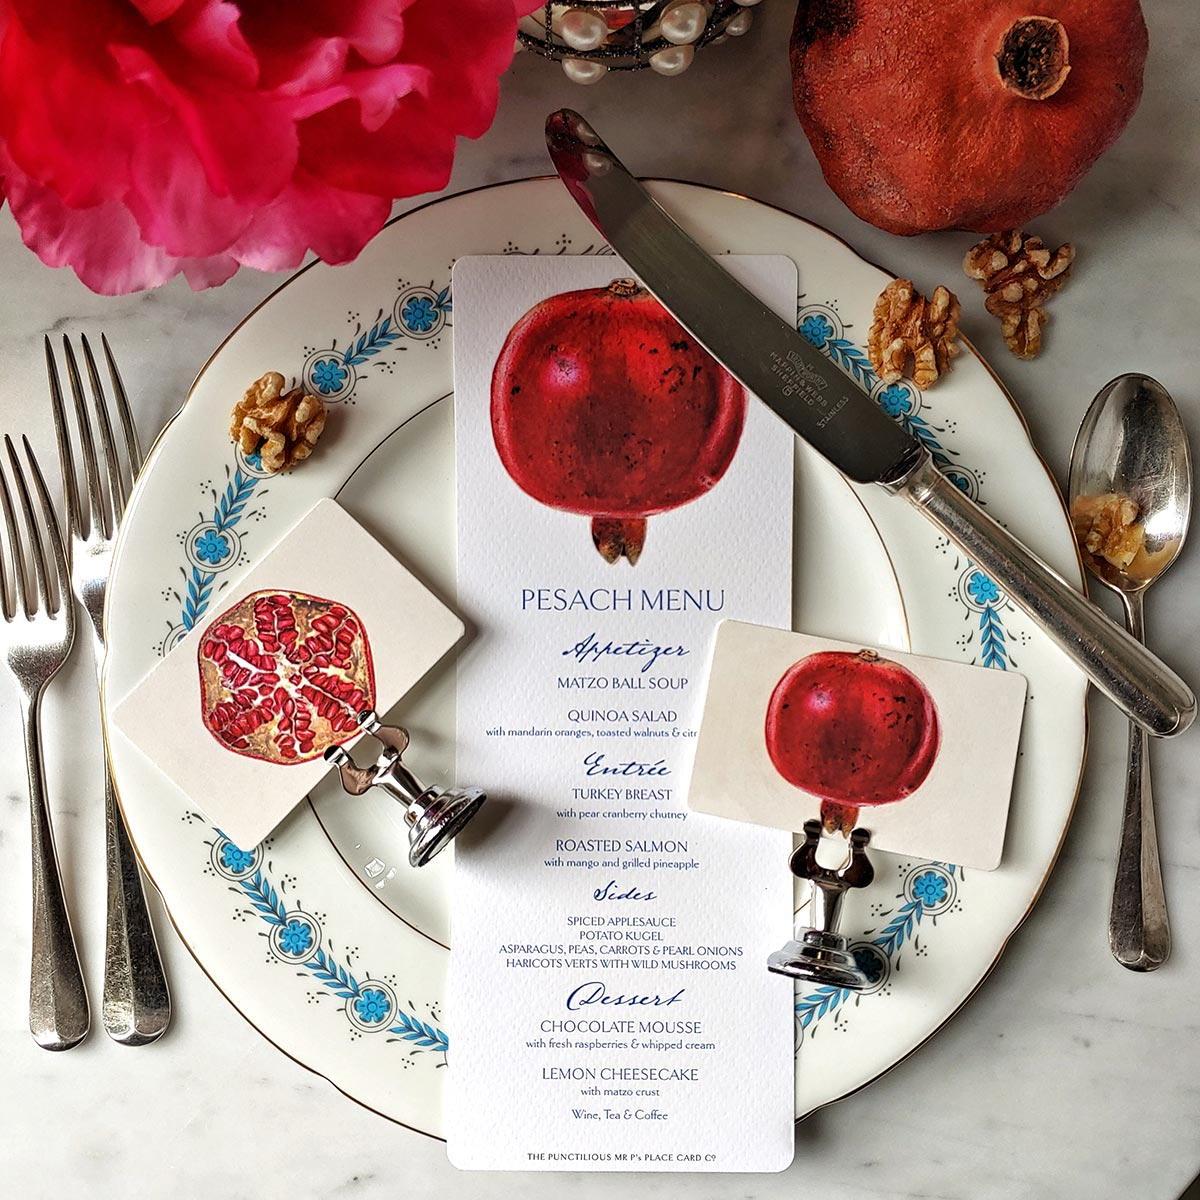 The Punctilious Mr. P's 'Pomegranate' place cards with pomegranate menu card